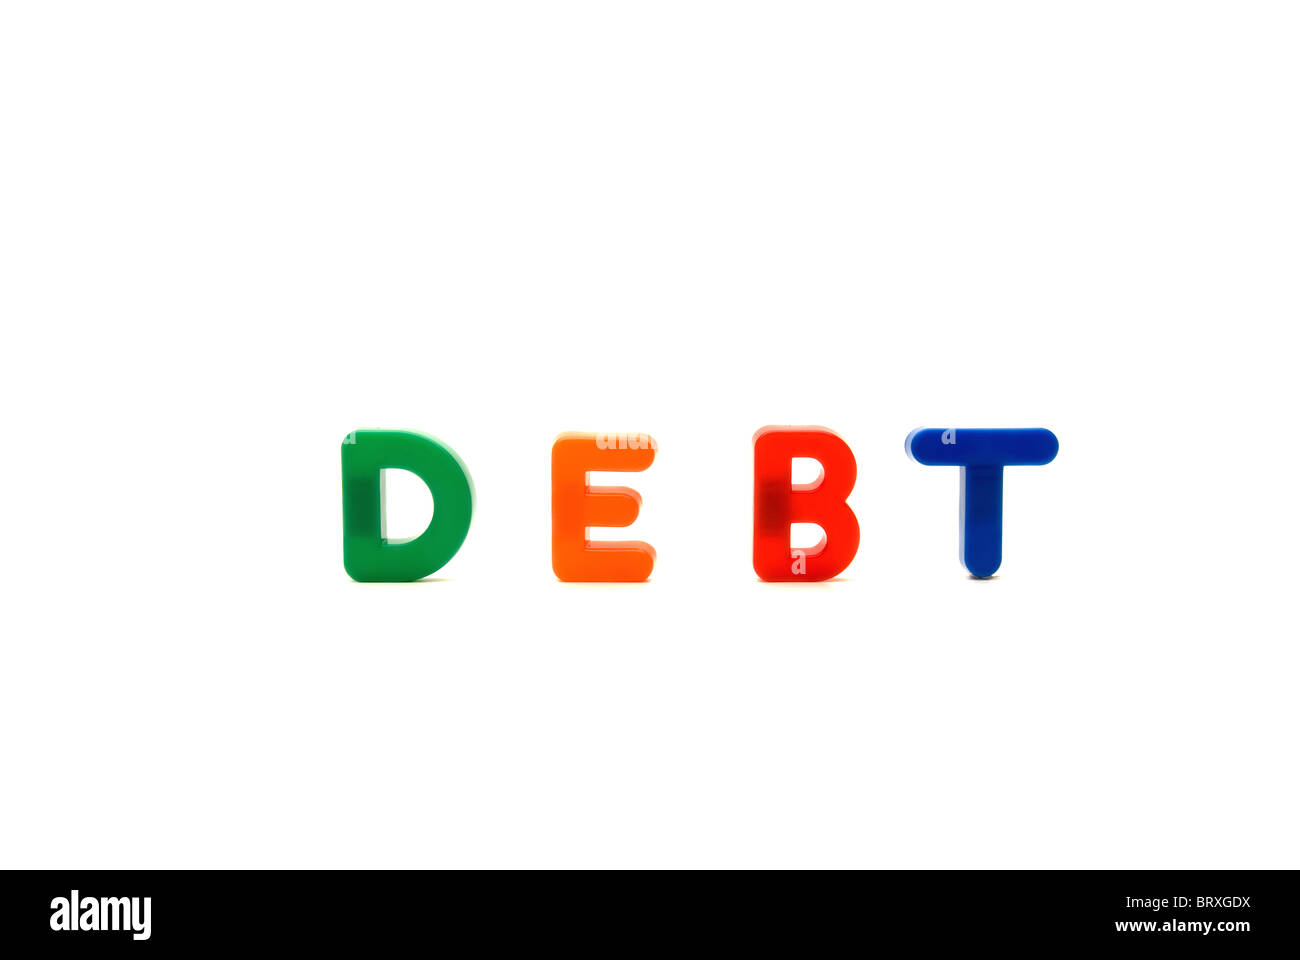 Conceptual image with children's magnetic educational letters spelling the word Debt. - Stock Image